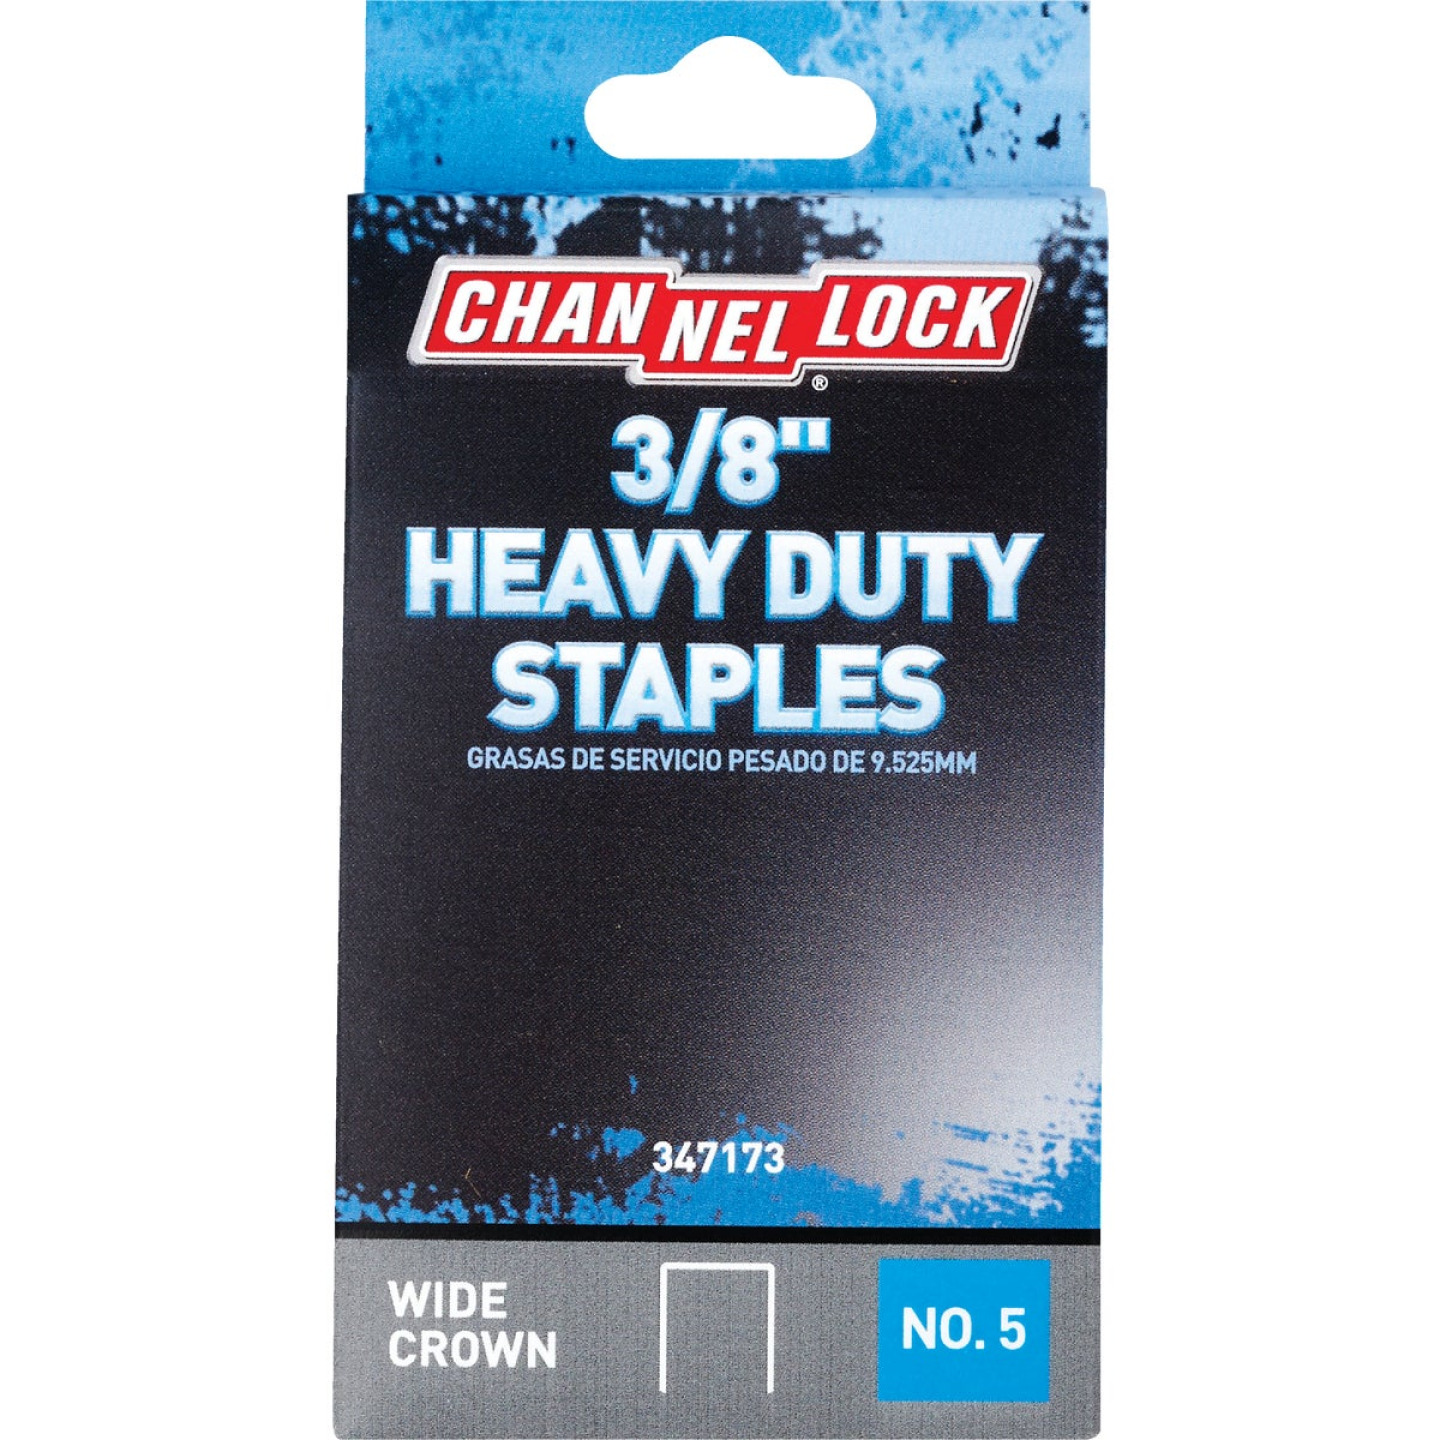 Channellock No. 5 Heavy-Duty Wide Crown Staple, 3/8 In. (1000-Pack) Image 1